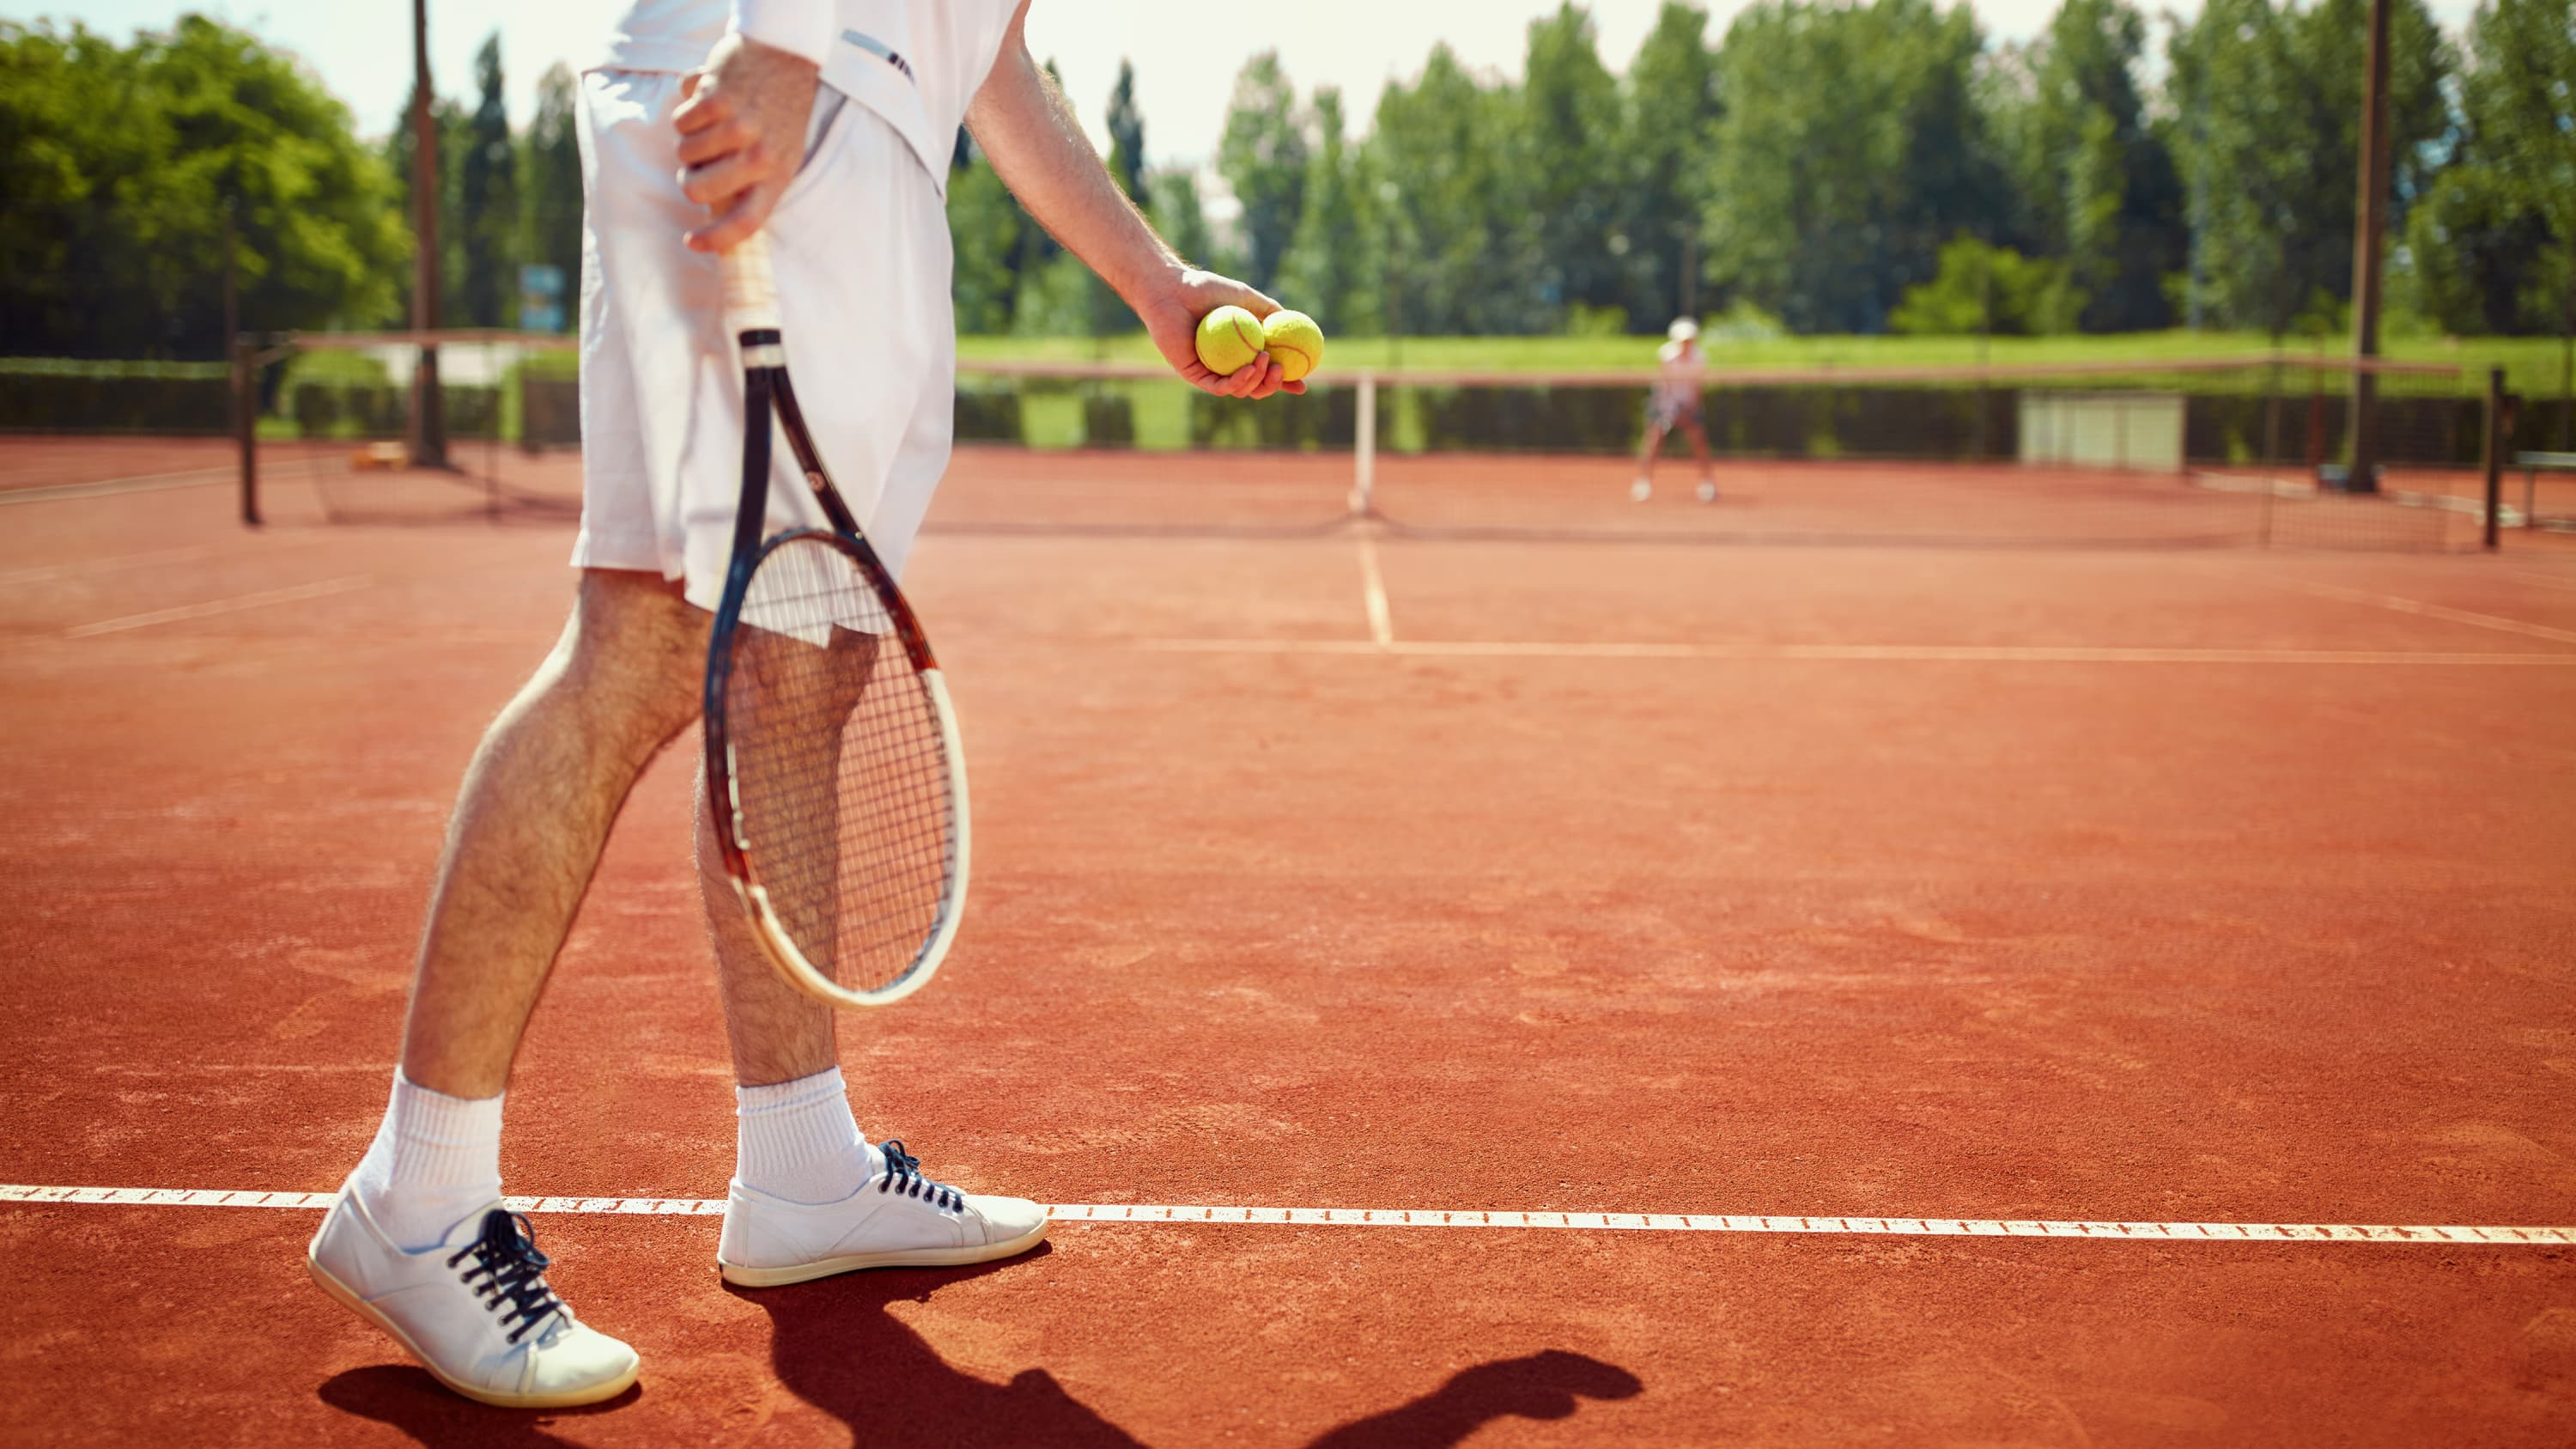 Legs of a tennis player, who may have lipodystrophy, a group of rare syndromes that causes a person to lose fat tissue on some parts of the body, while gaining it in others.